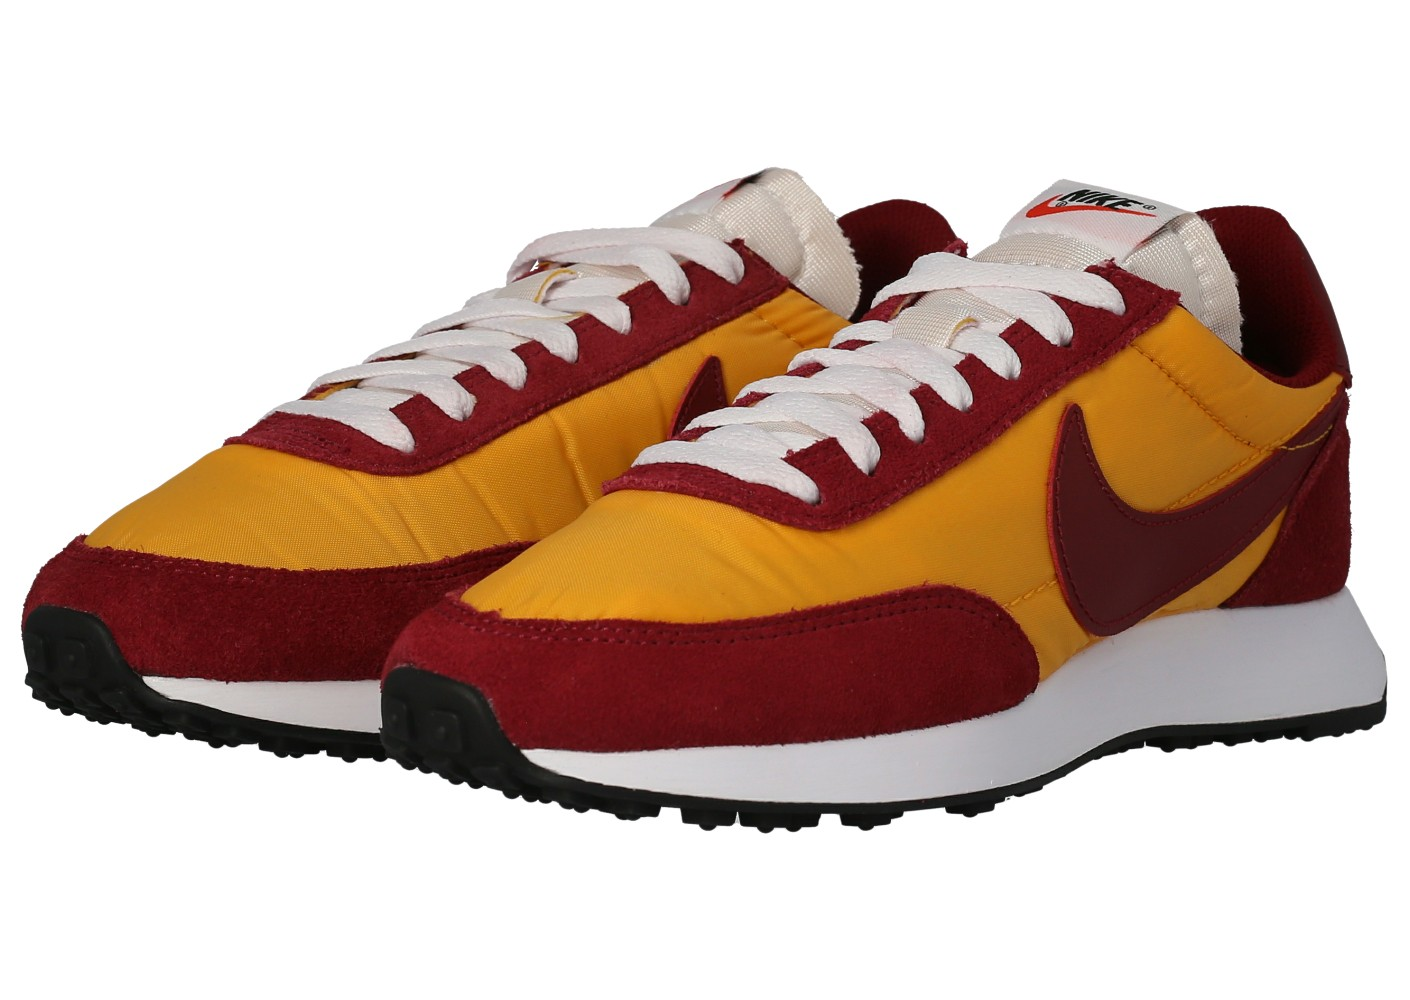 Nike Air Tailwind 79 jaune et rouge Chaussures Baskets